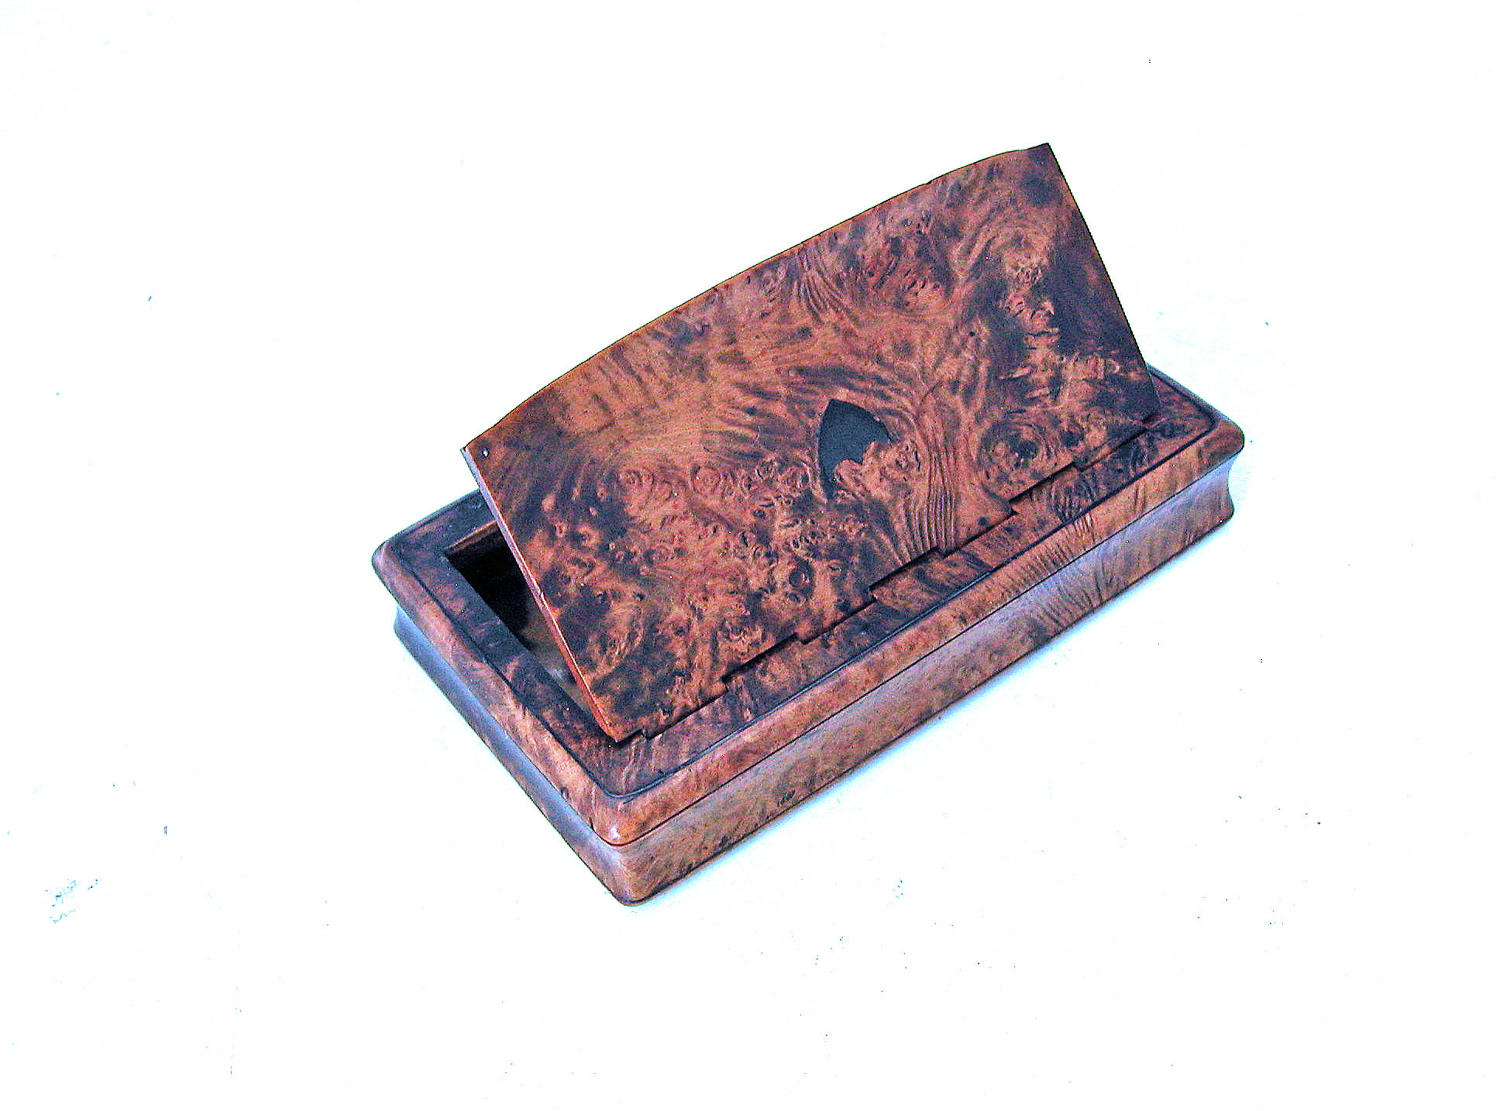 Antique 19thc Treen Masur Birch Snuff Box.  English. C1860-80.